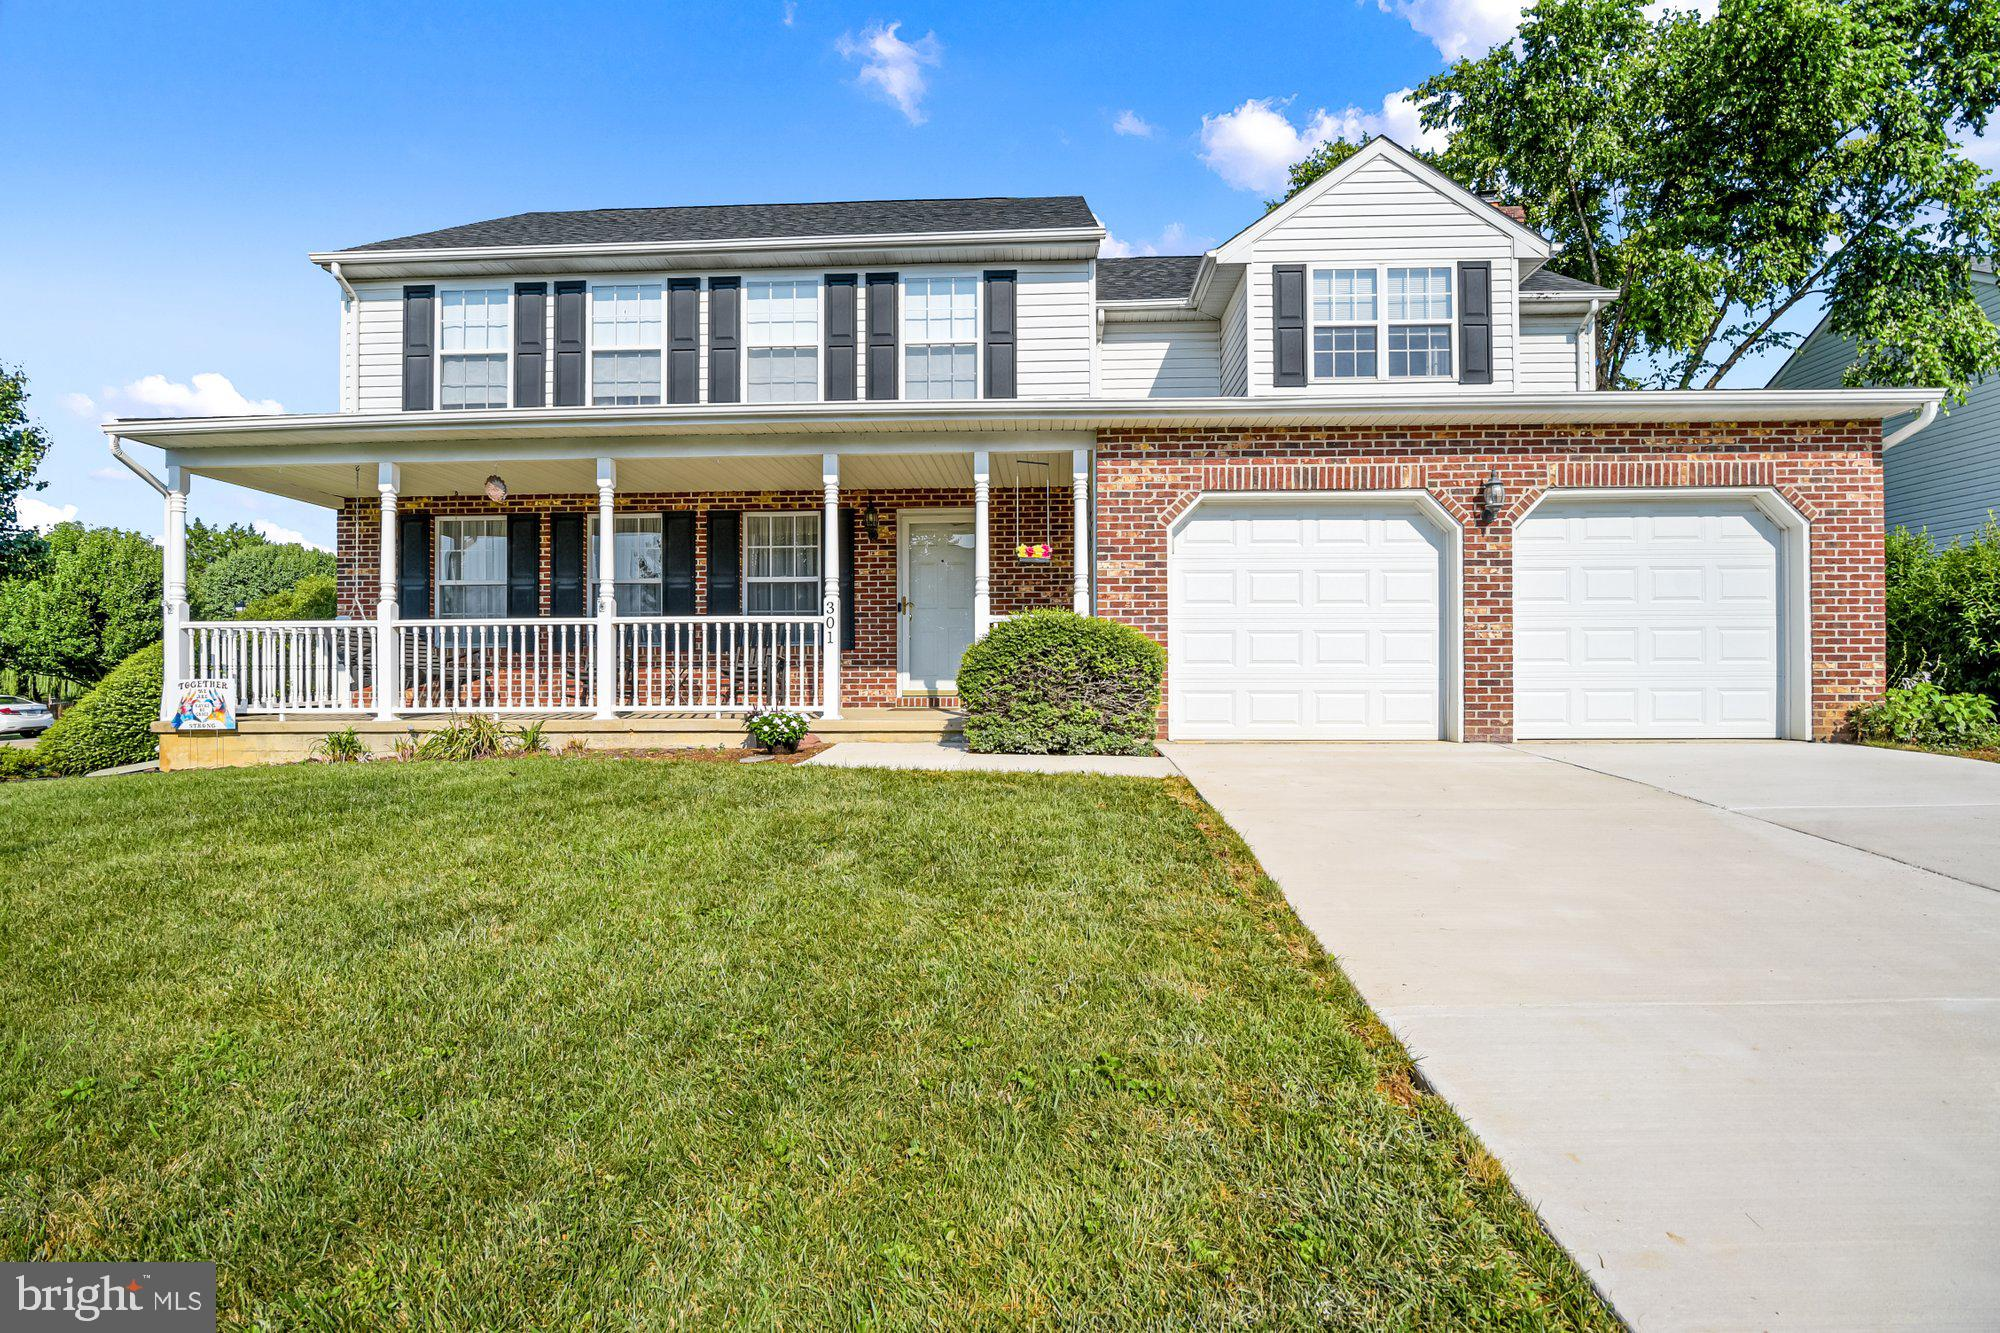 Looks and feels new and almost is!!!  Roof (2017), Deck (2018), Family room carpet (2016), kitchen tile (2016), kitchen faucets & disposal (2019), furnace and a/c (2013), bathroom triple mirror & lights (2018), new garage doors (2018), faucets in bath (2019) hall toilet (2020), dishwasher (2019), owners suite carpet (2017), solar panels (2015), new driveway (2021)!!  You can tell these owners have taken pride in this 4 bedroom 2.5 bath front porch Colonial. Formal living room and dining room, kitchen with granite, stainless appliances, under cabinet lighting and removable island. Owner's suite has a sitting room and owner's bathroom w/washer & dryer.  Three very nice sized additional bedrooms on the second floor. Basement is partially finished with lots of storage! Backyard is lovely with landscaping, deck and grill that will stay.